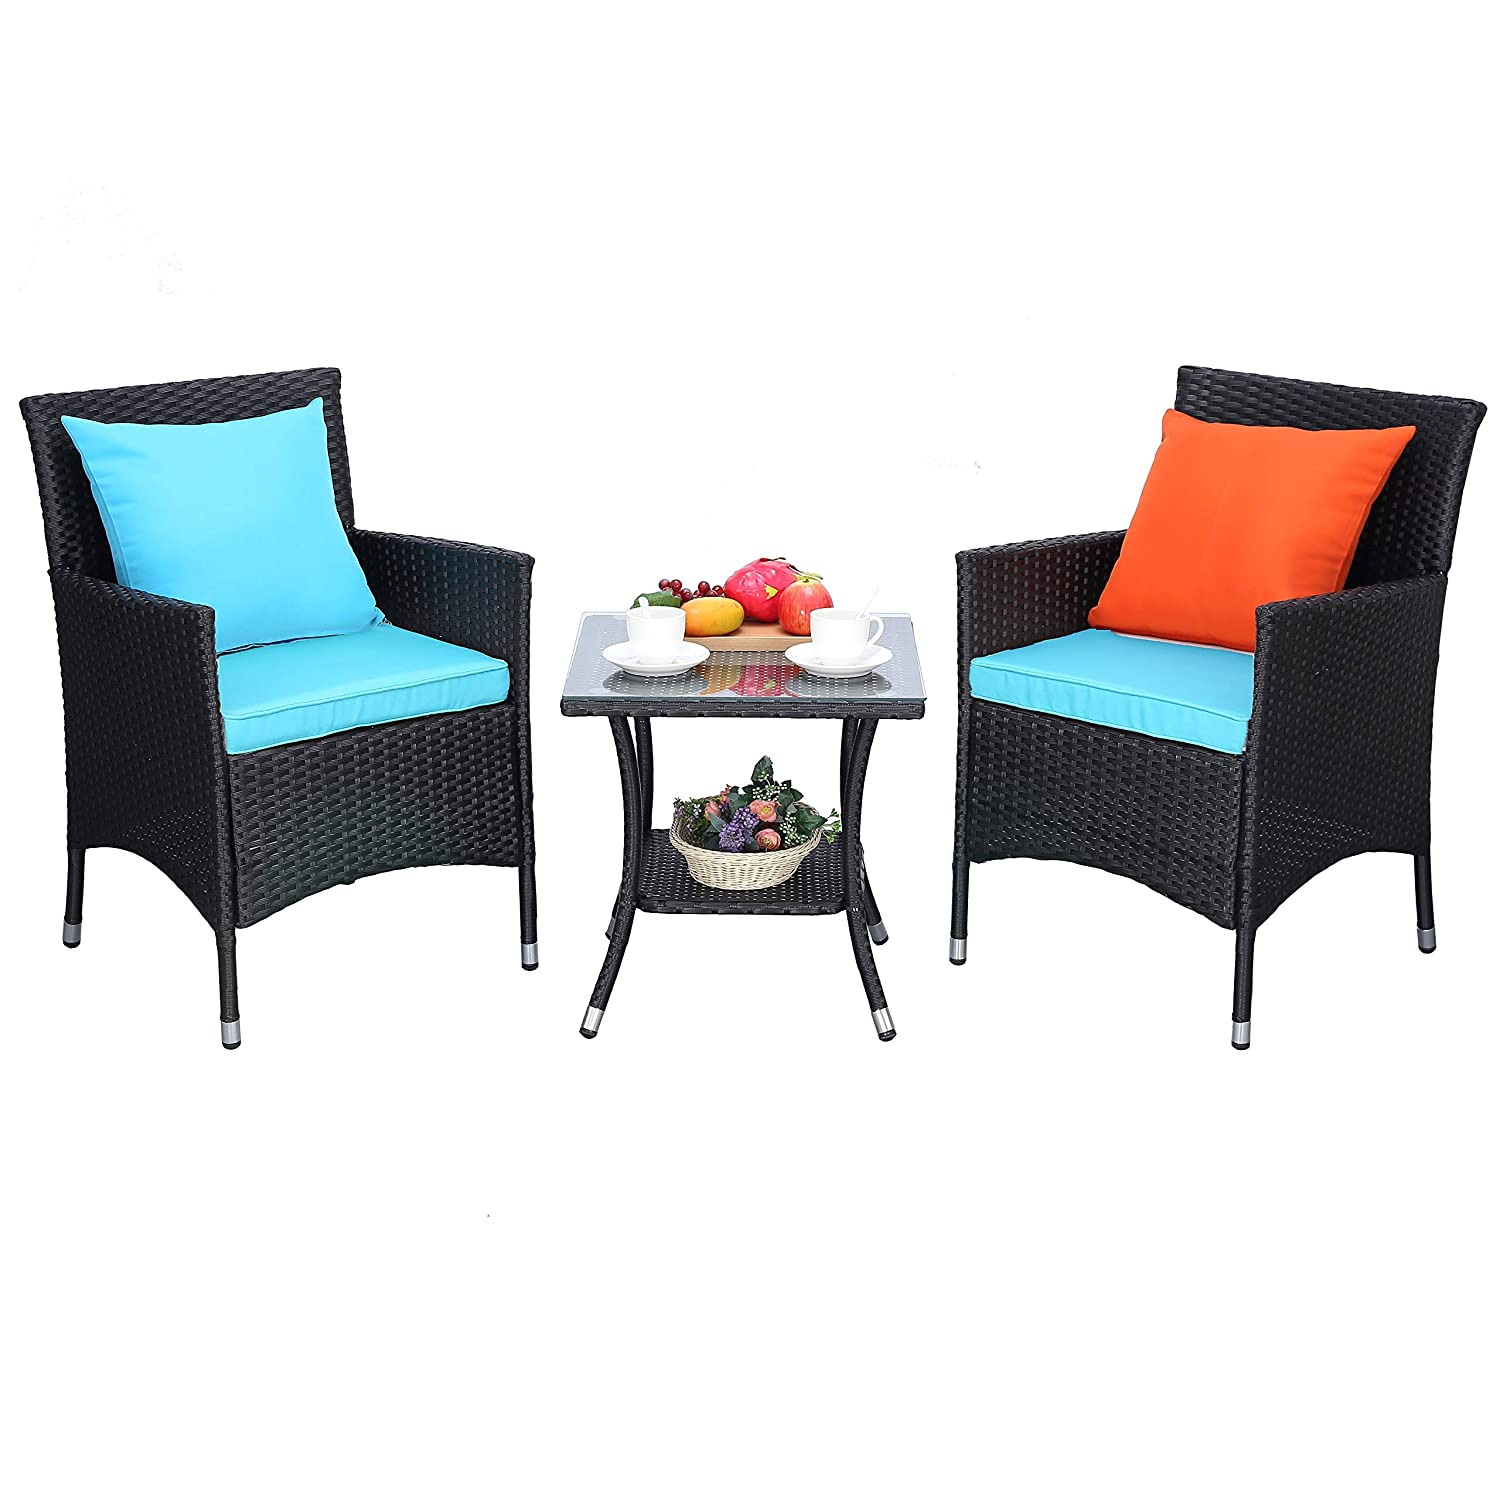 Do4U Outdoor Furniture Sets 3 Pieces Patio Wicker Bistro Set with Coffee Table Garden Lawn Dining Chairs Turquoise